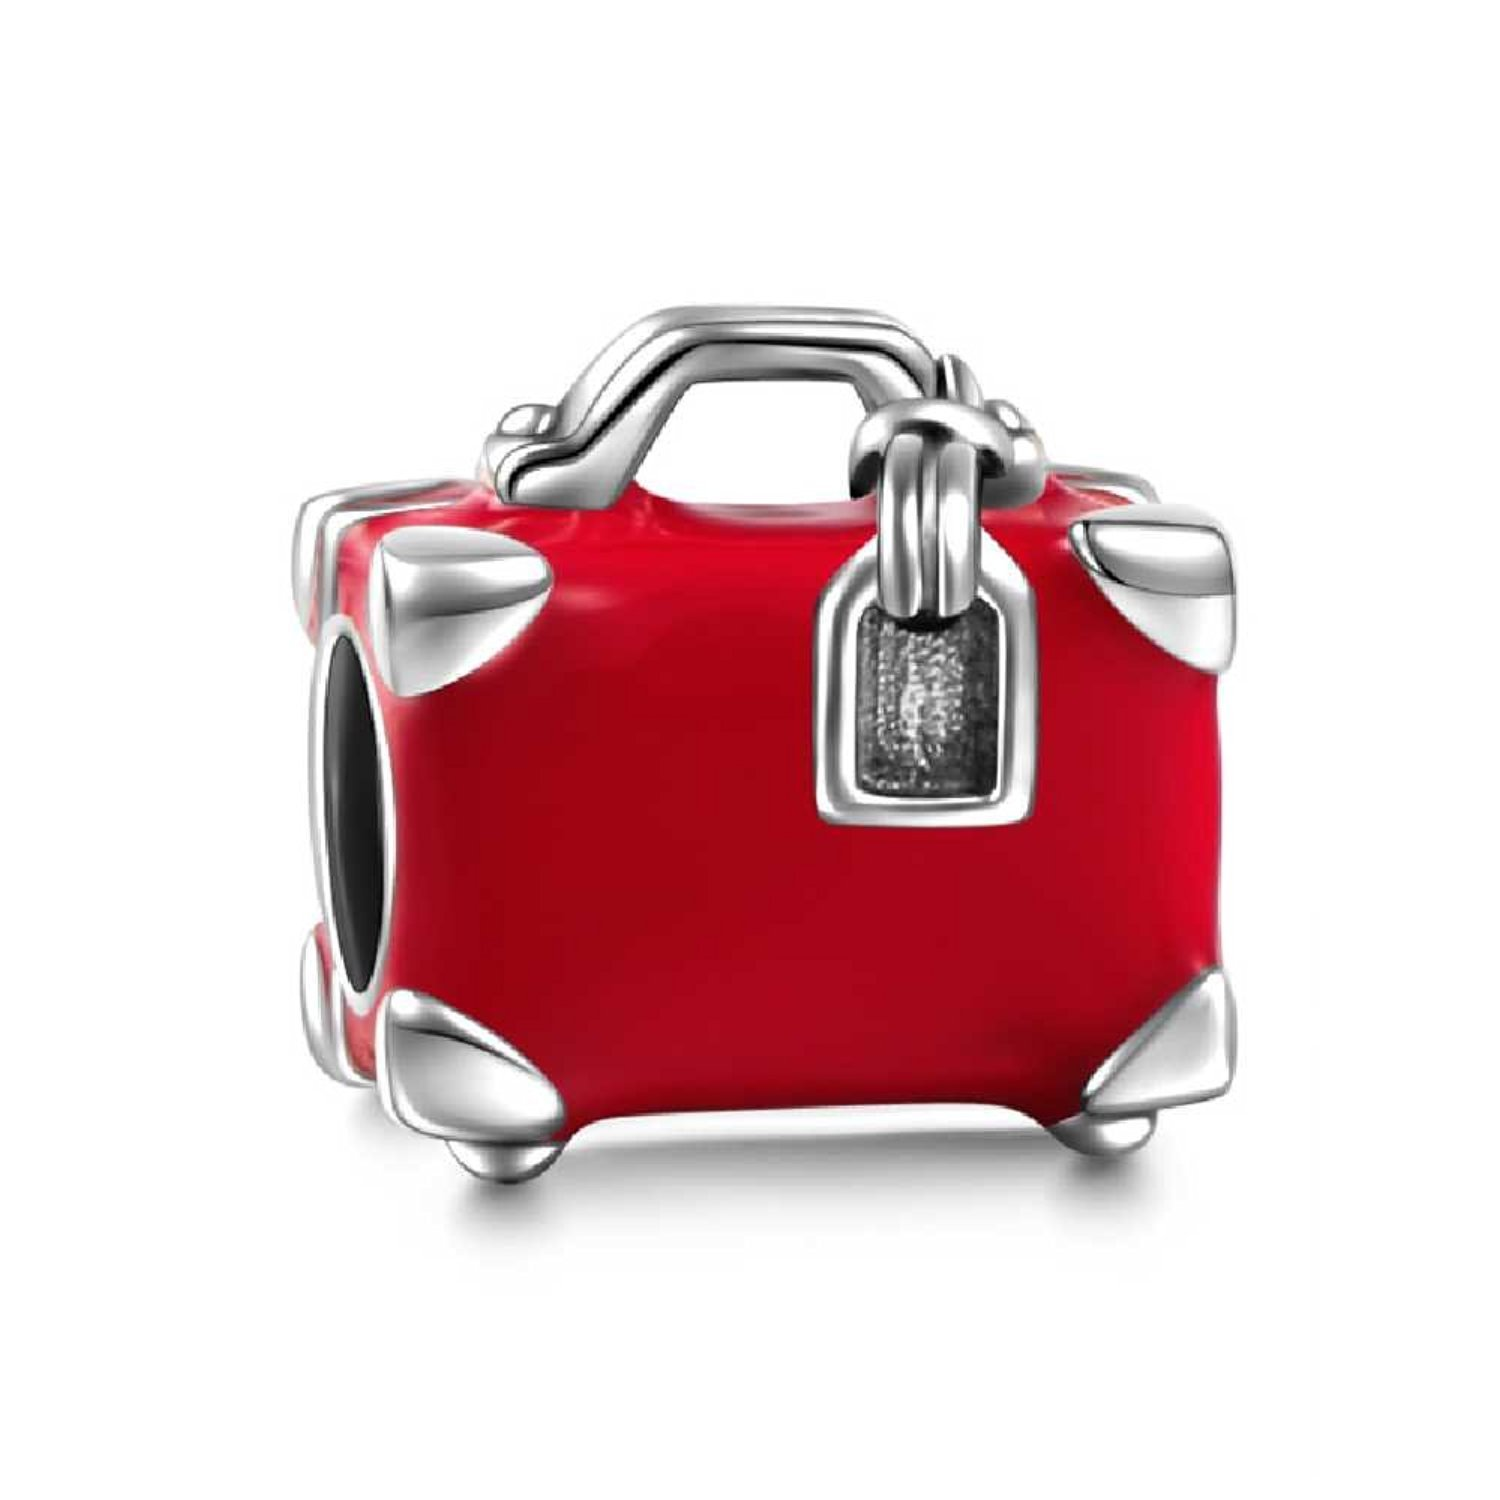 Travelers Luggage Suitcase Charm 925 Sterling Silver Fit European Brand Travel Charms